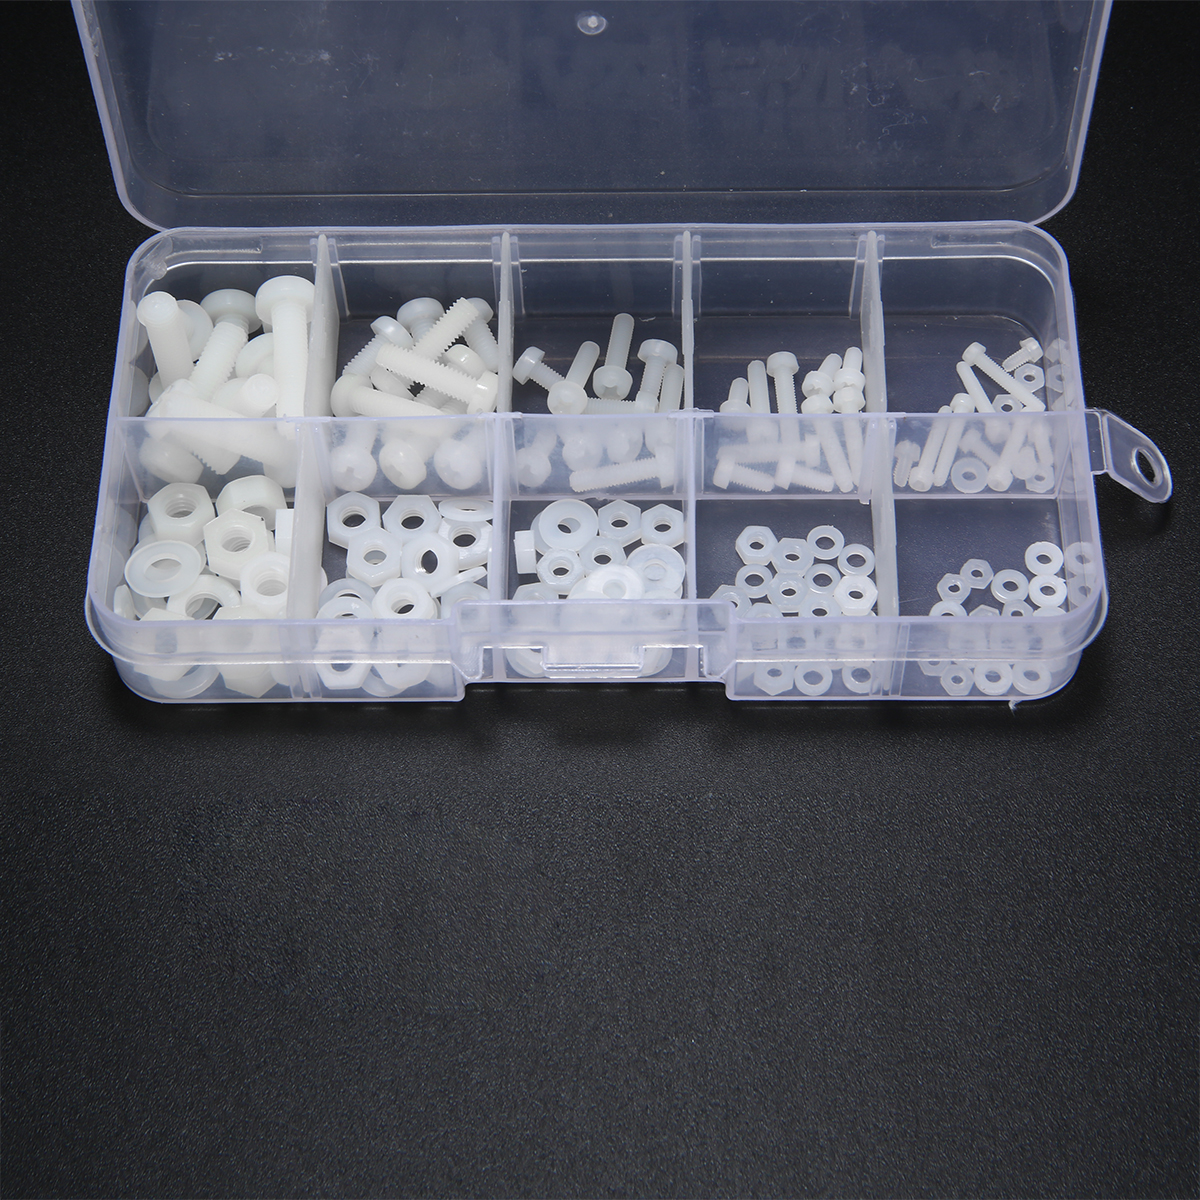 150pcs White Nylon Hex Screw M2 M2.5 M3 M4 M5 Bolt Nut Standoff Spacer Kit with Plastic Box Corrosion Resistant Pakistan